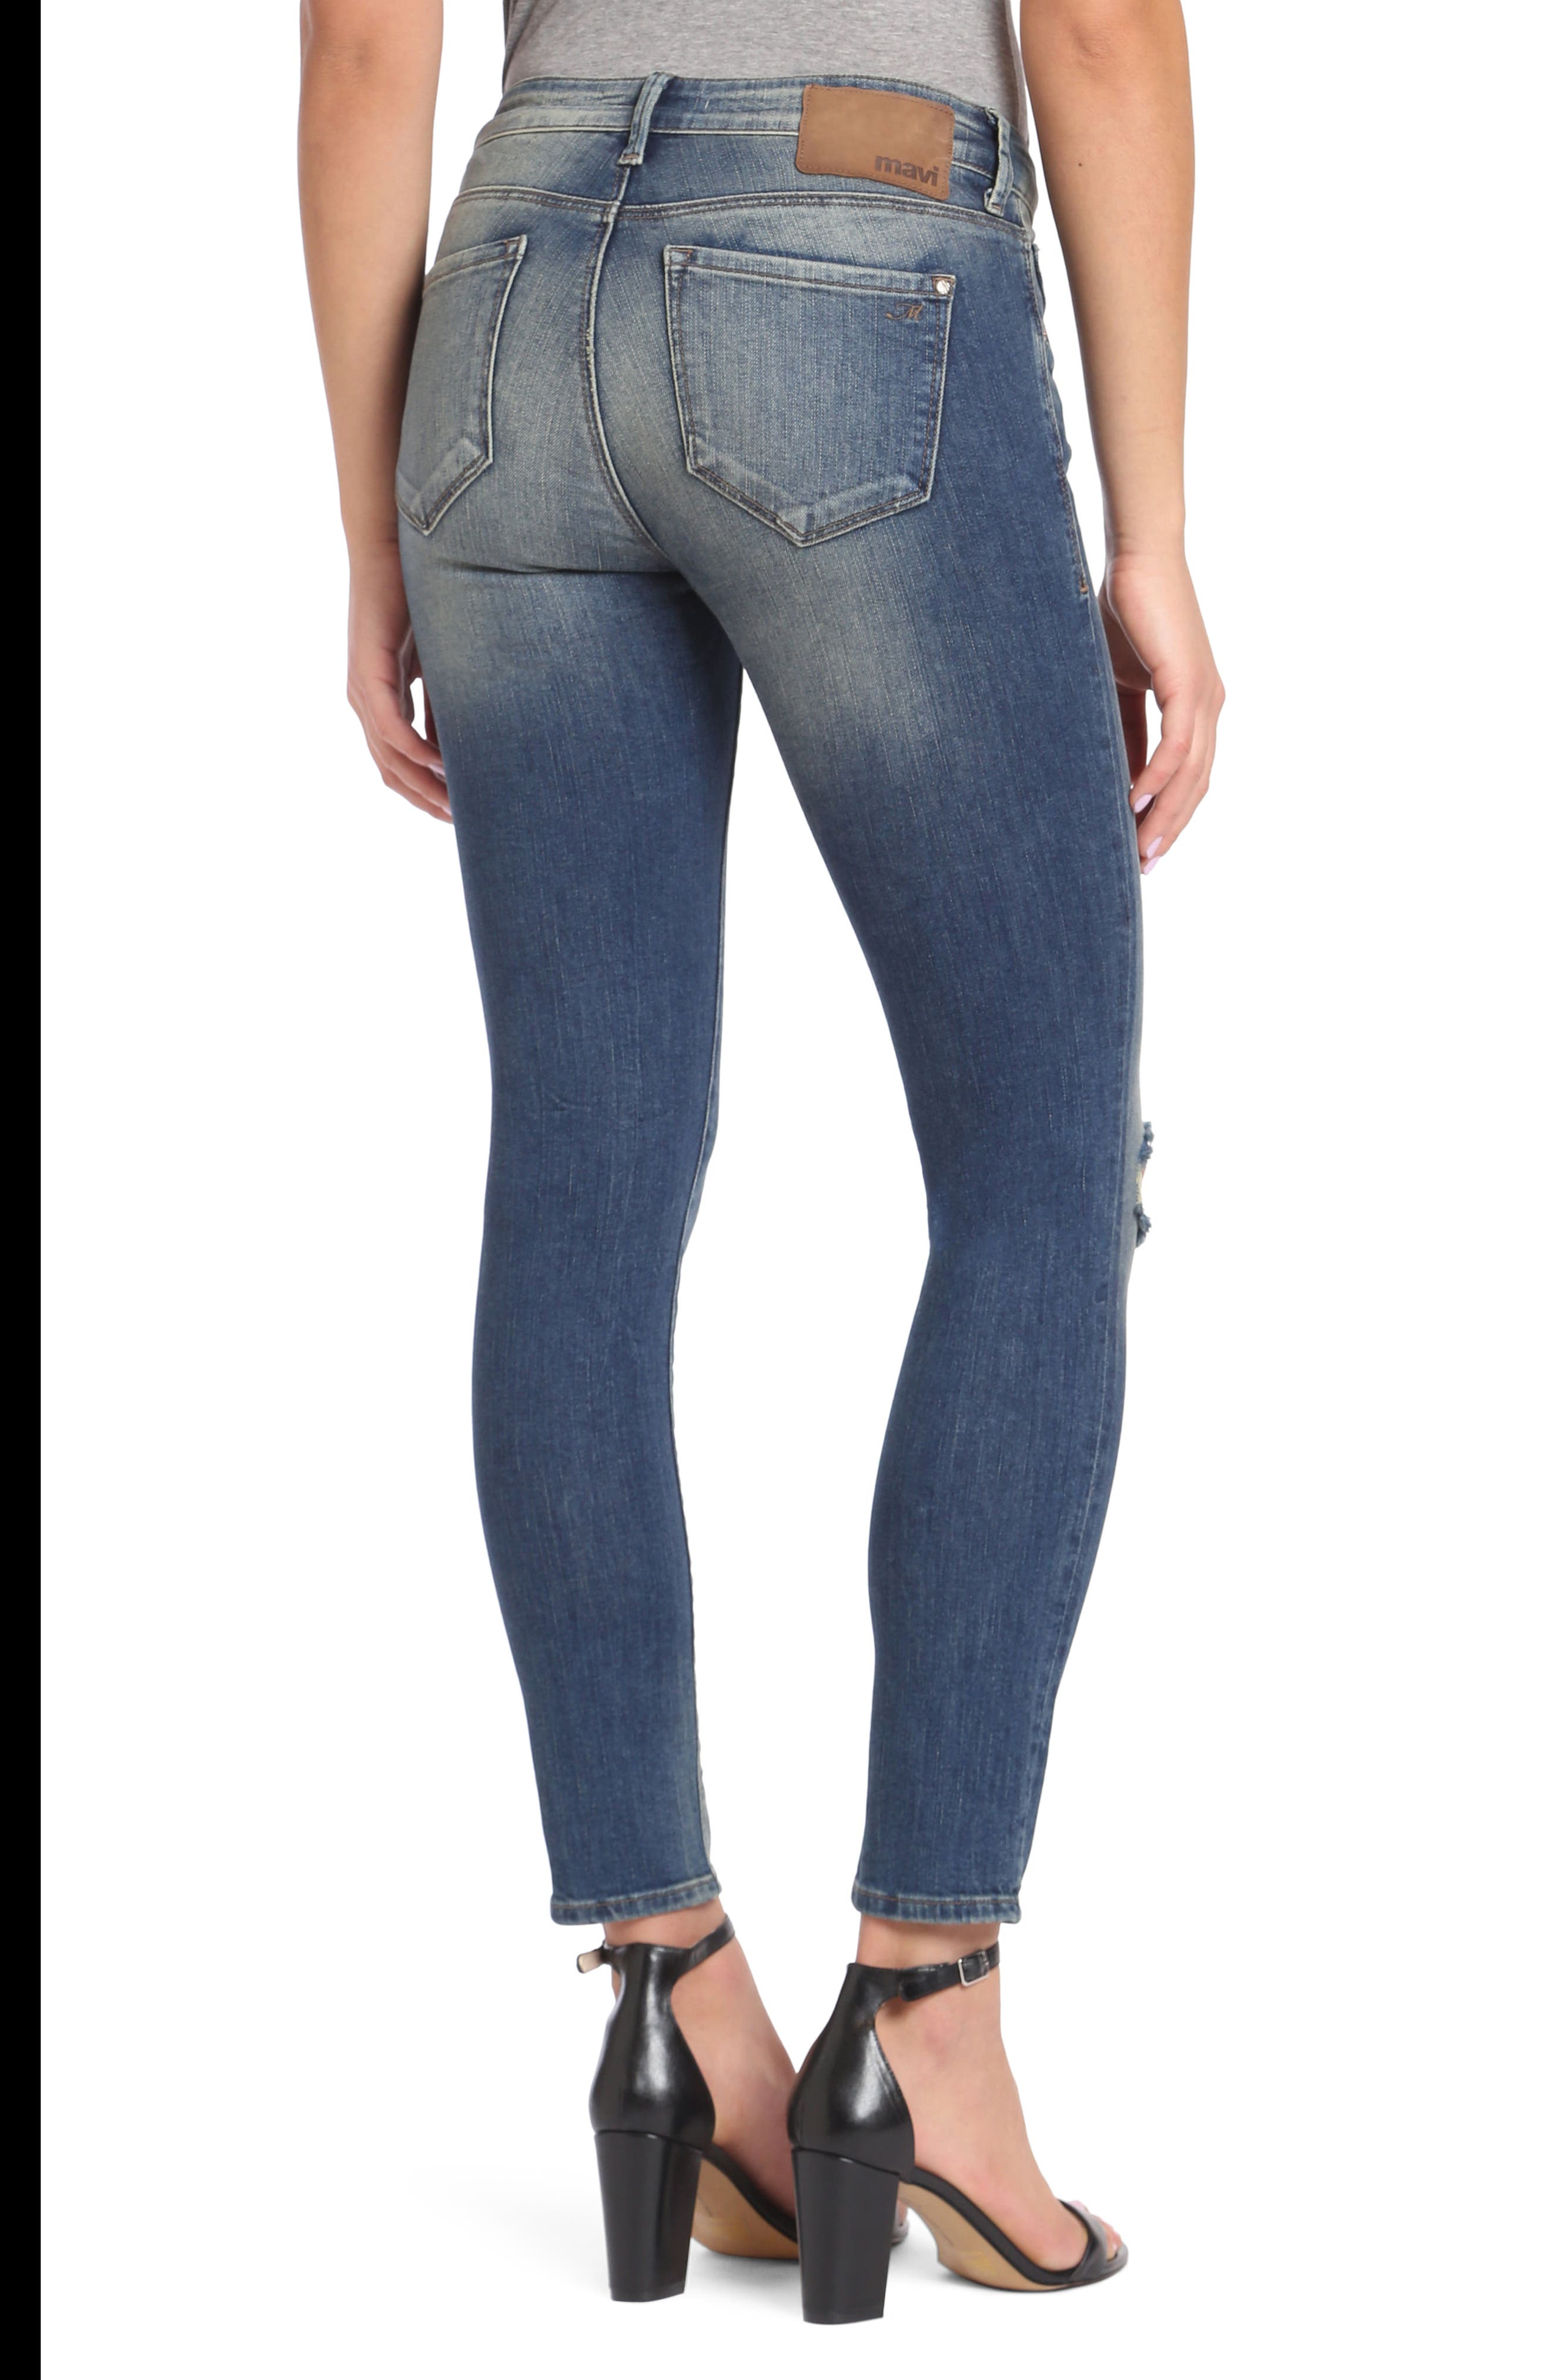 Adriana Stretch Skinny Jeans,                             Alternate thumbnail 2, color,                             Mid Shaded Glam Vintage